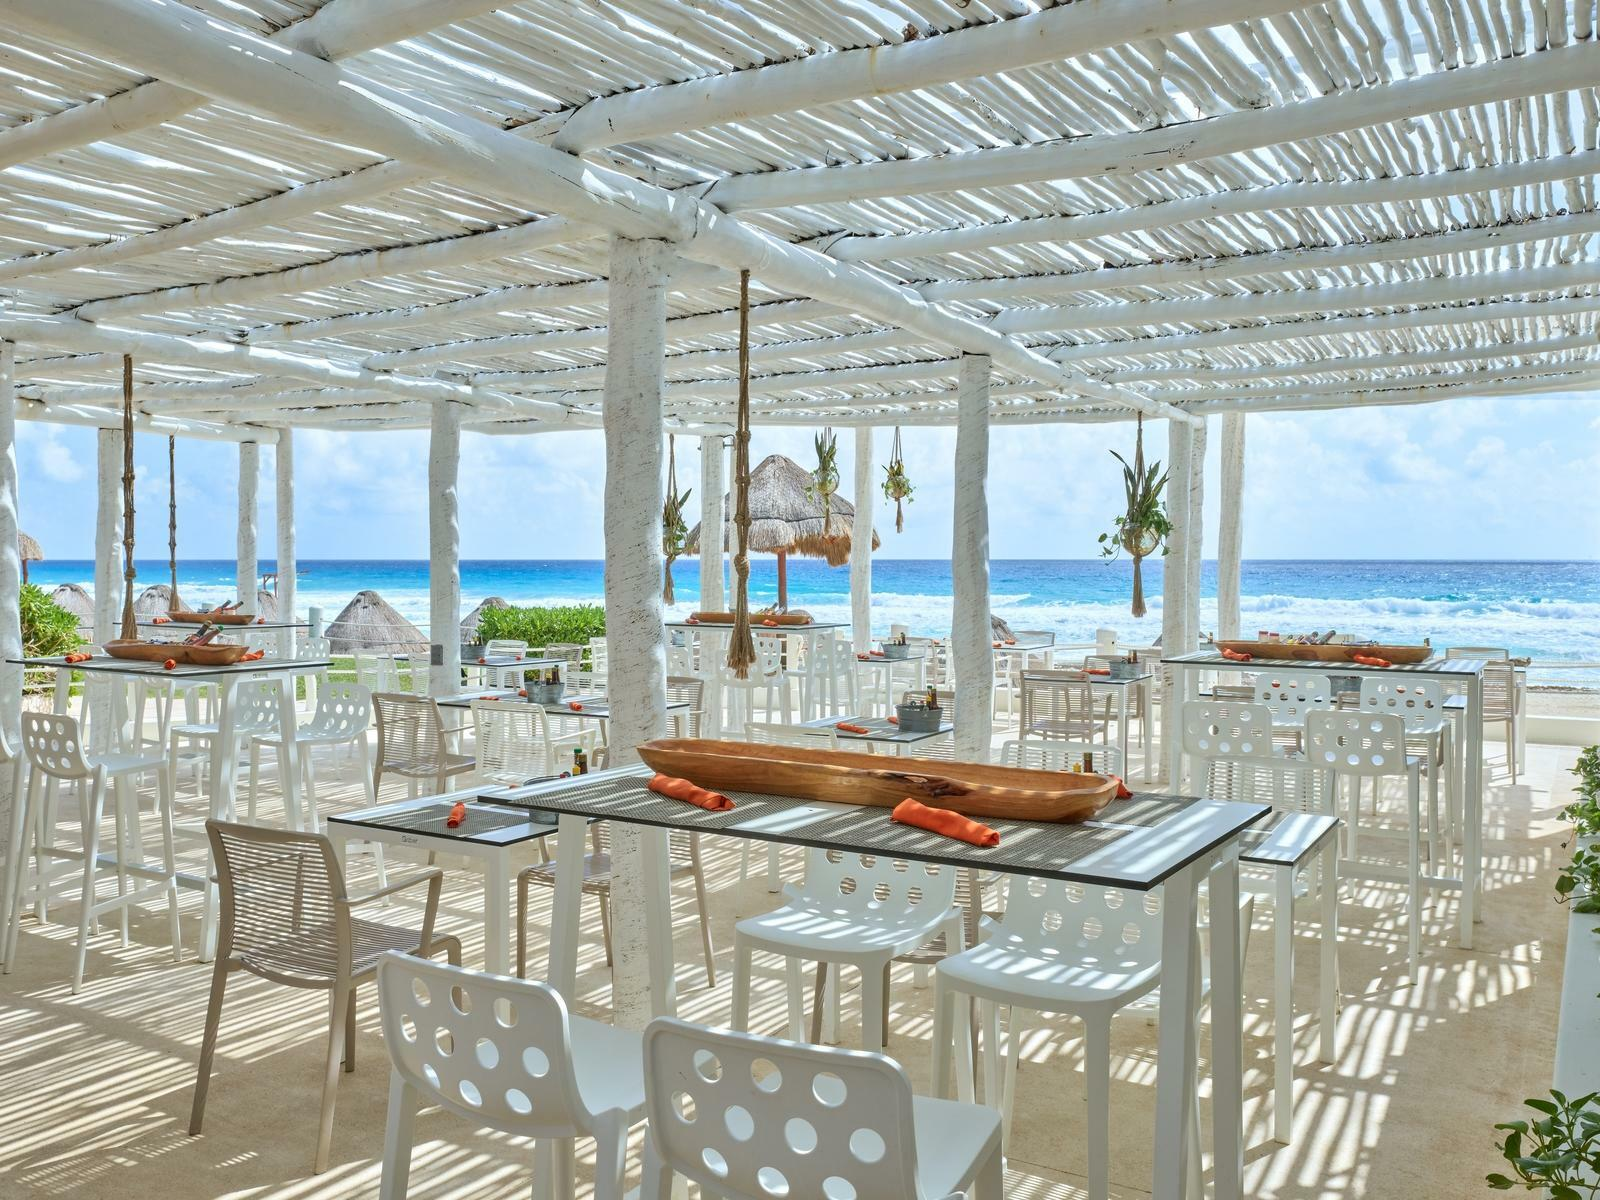 outdoor restaurant with glass tables, white chairs and ocean view